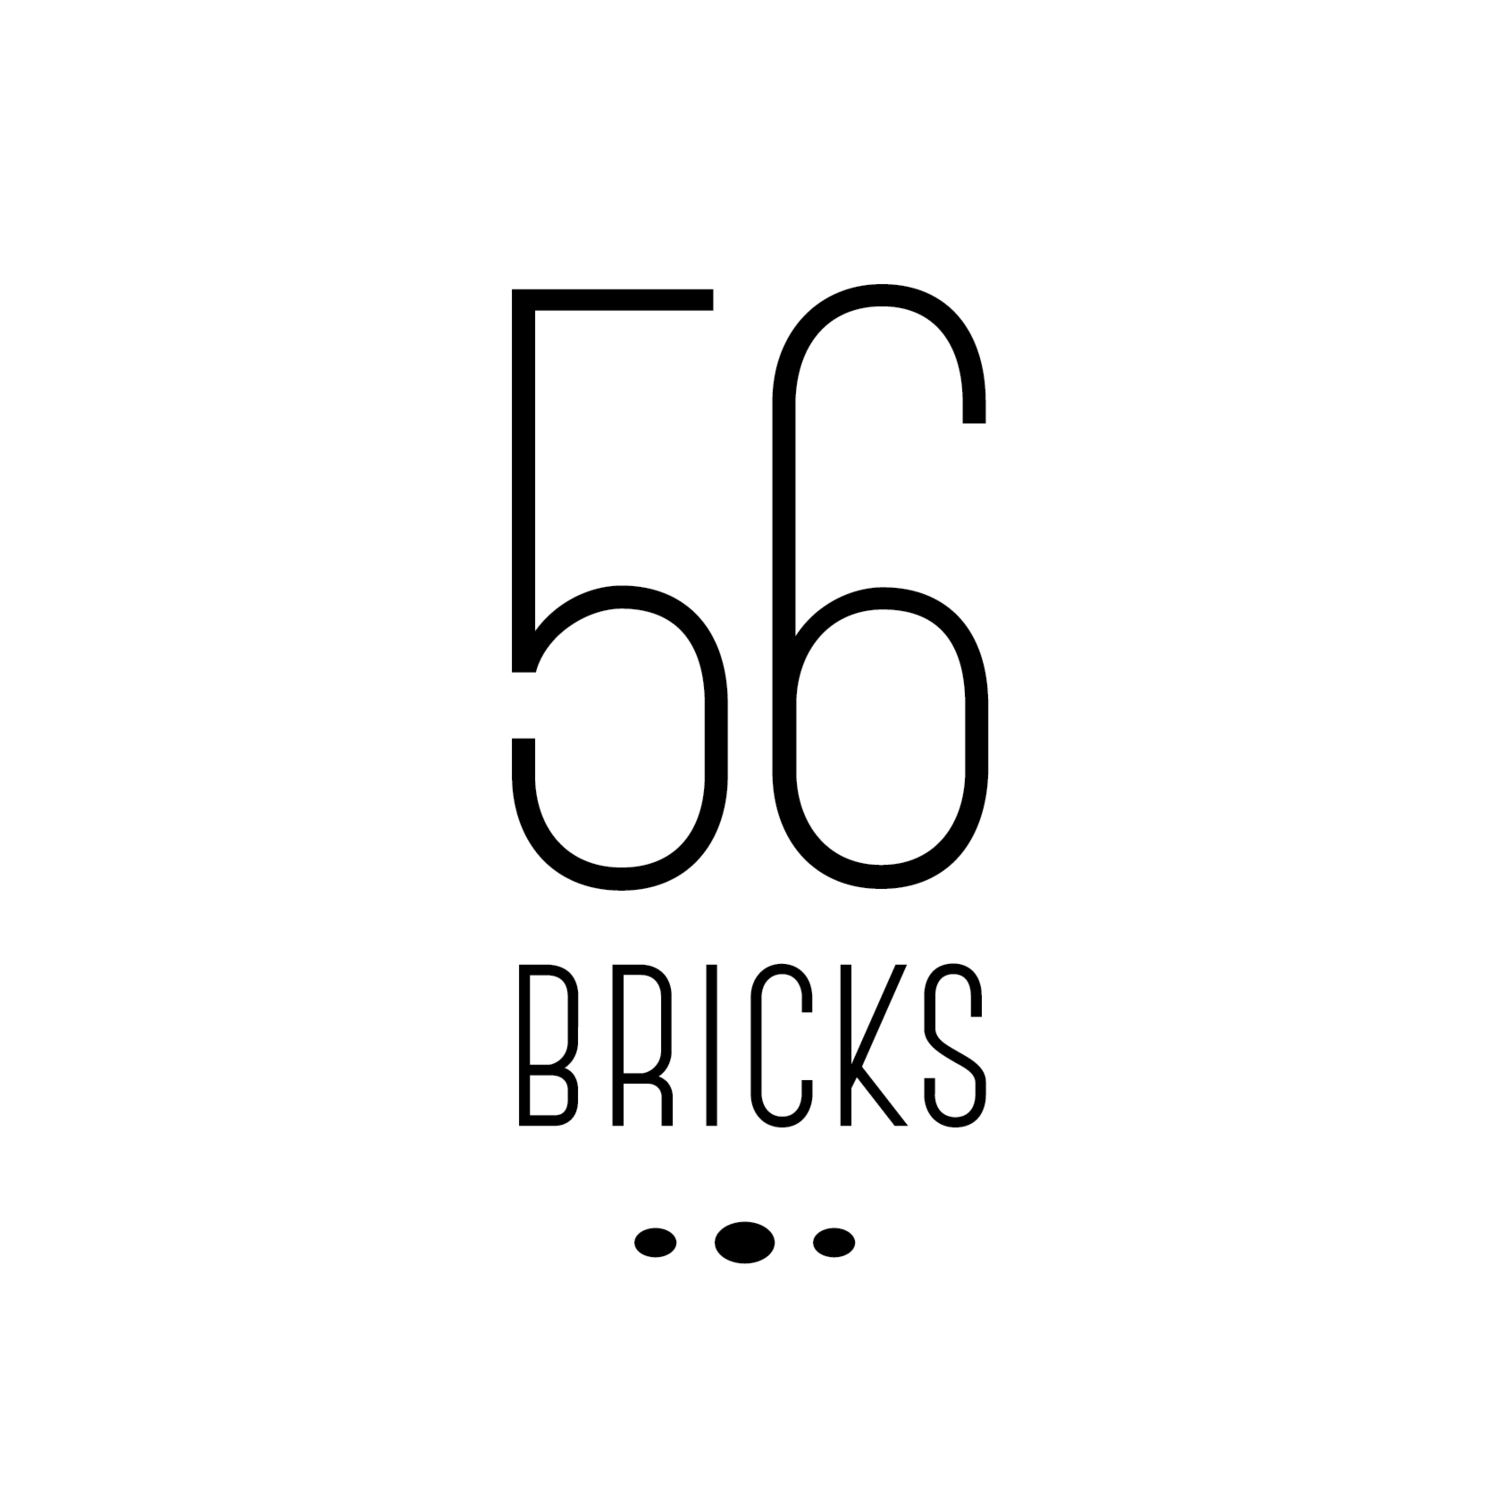 56 BRICKS CHAPEL STREET WINDSOR